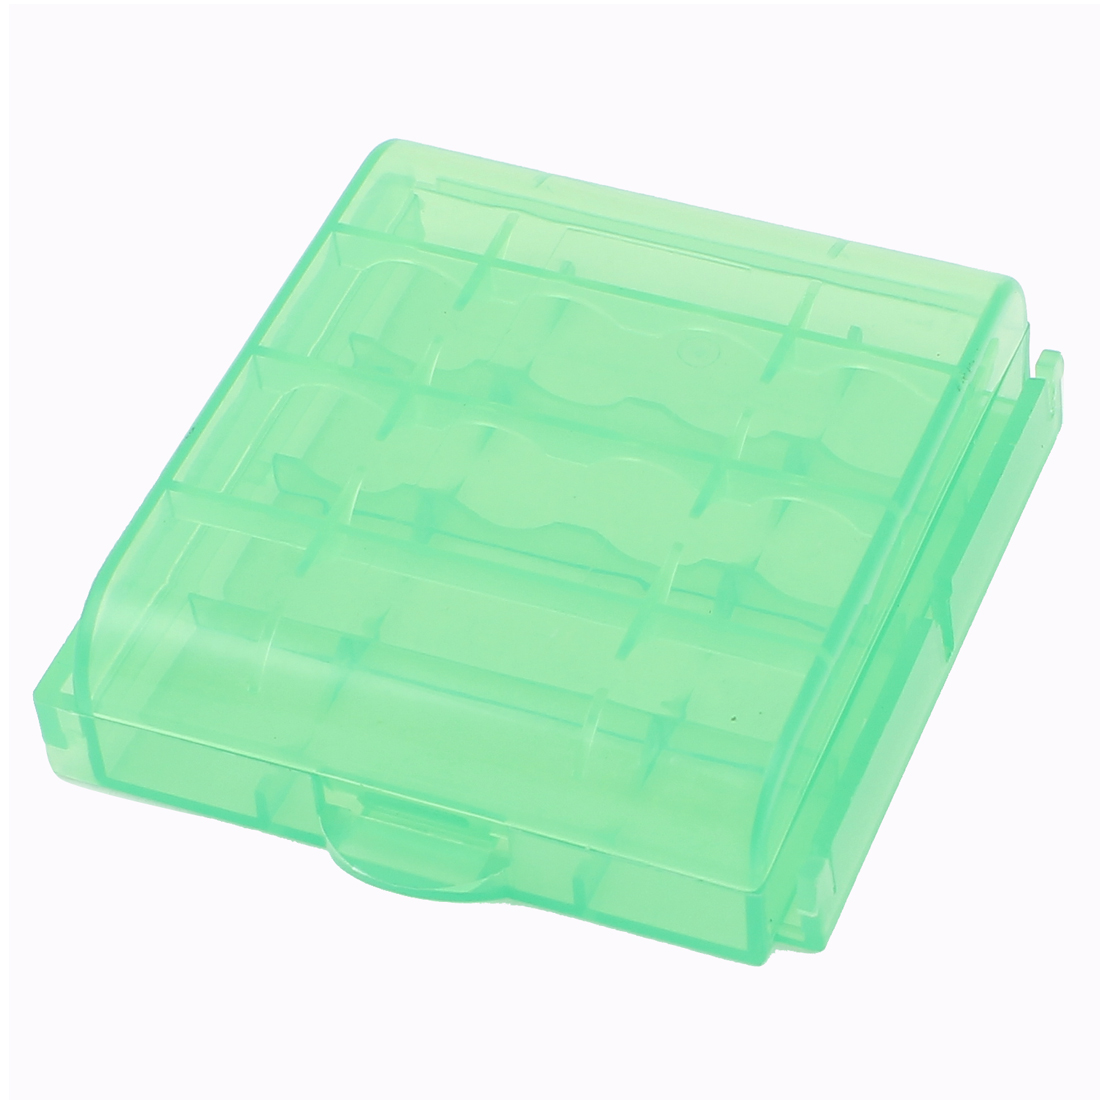 Plastic Portable Case Holder Storage Box Dark Green for AA AAA Battery Batteries